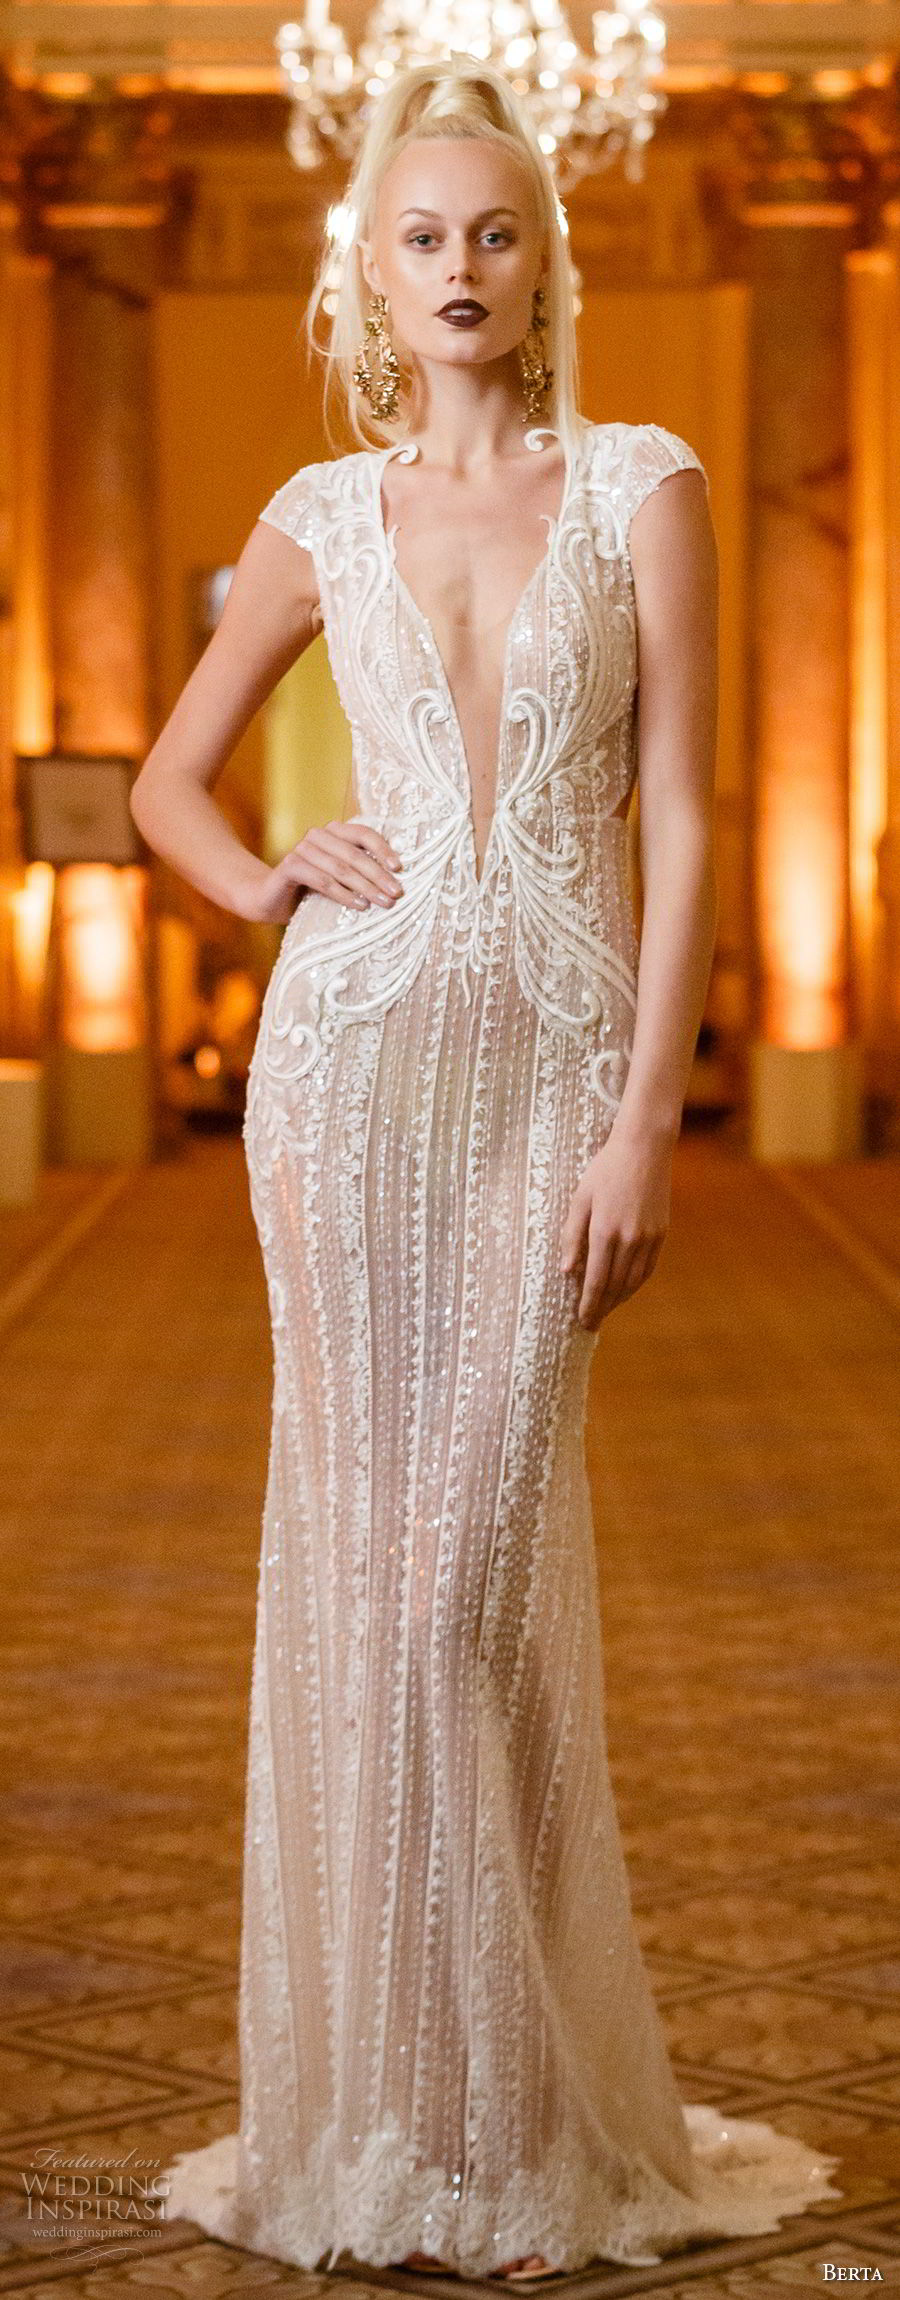 berta spring 2018 bridal cap sleeves deep plunging v neck full embellishment elegant sexy glamorous sheath wedding dress keyhole back sweep train (07) mv